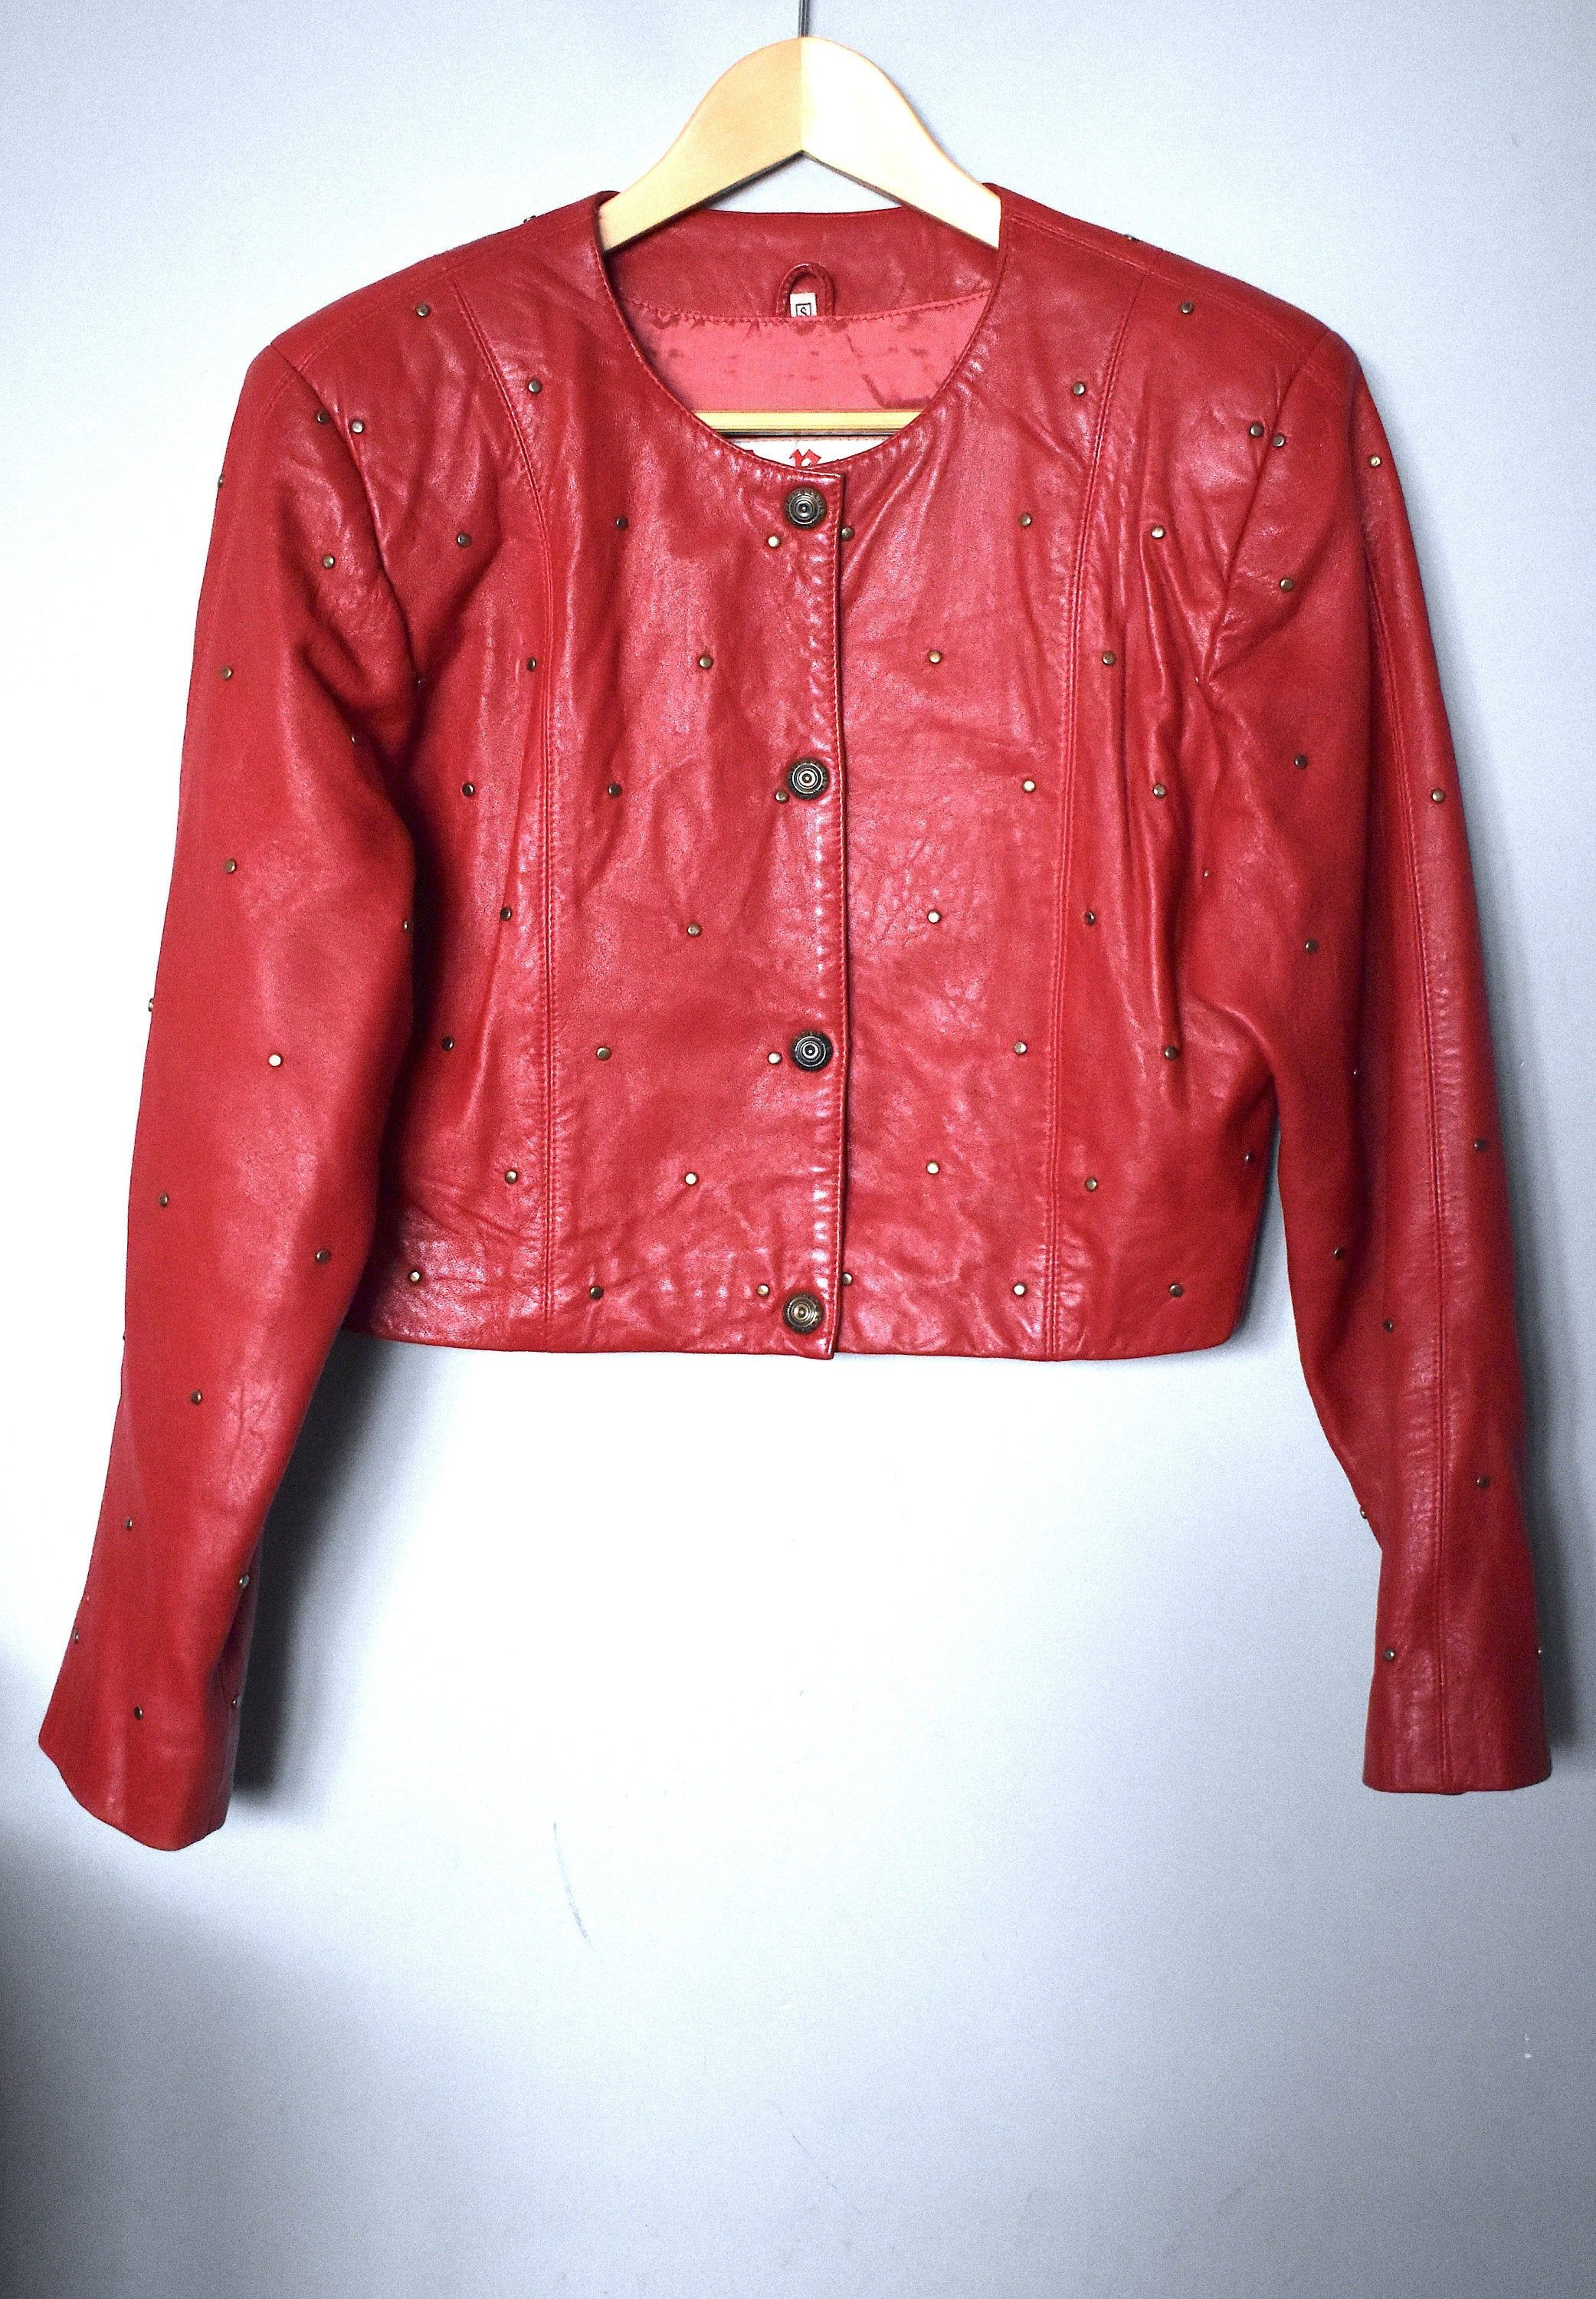 Vintage 90 S Cropped Red Leather Jacket Bedazzled Leather Jacket Short Leather Jacket Button U Short Leather Jacket Red Leather Blazer Cropped Jacket Outfit [ 3000 x 2083 Pixel ]